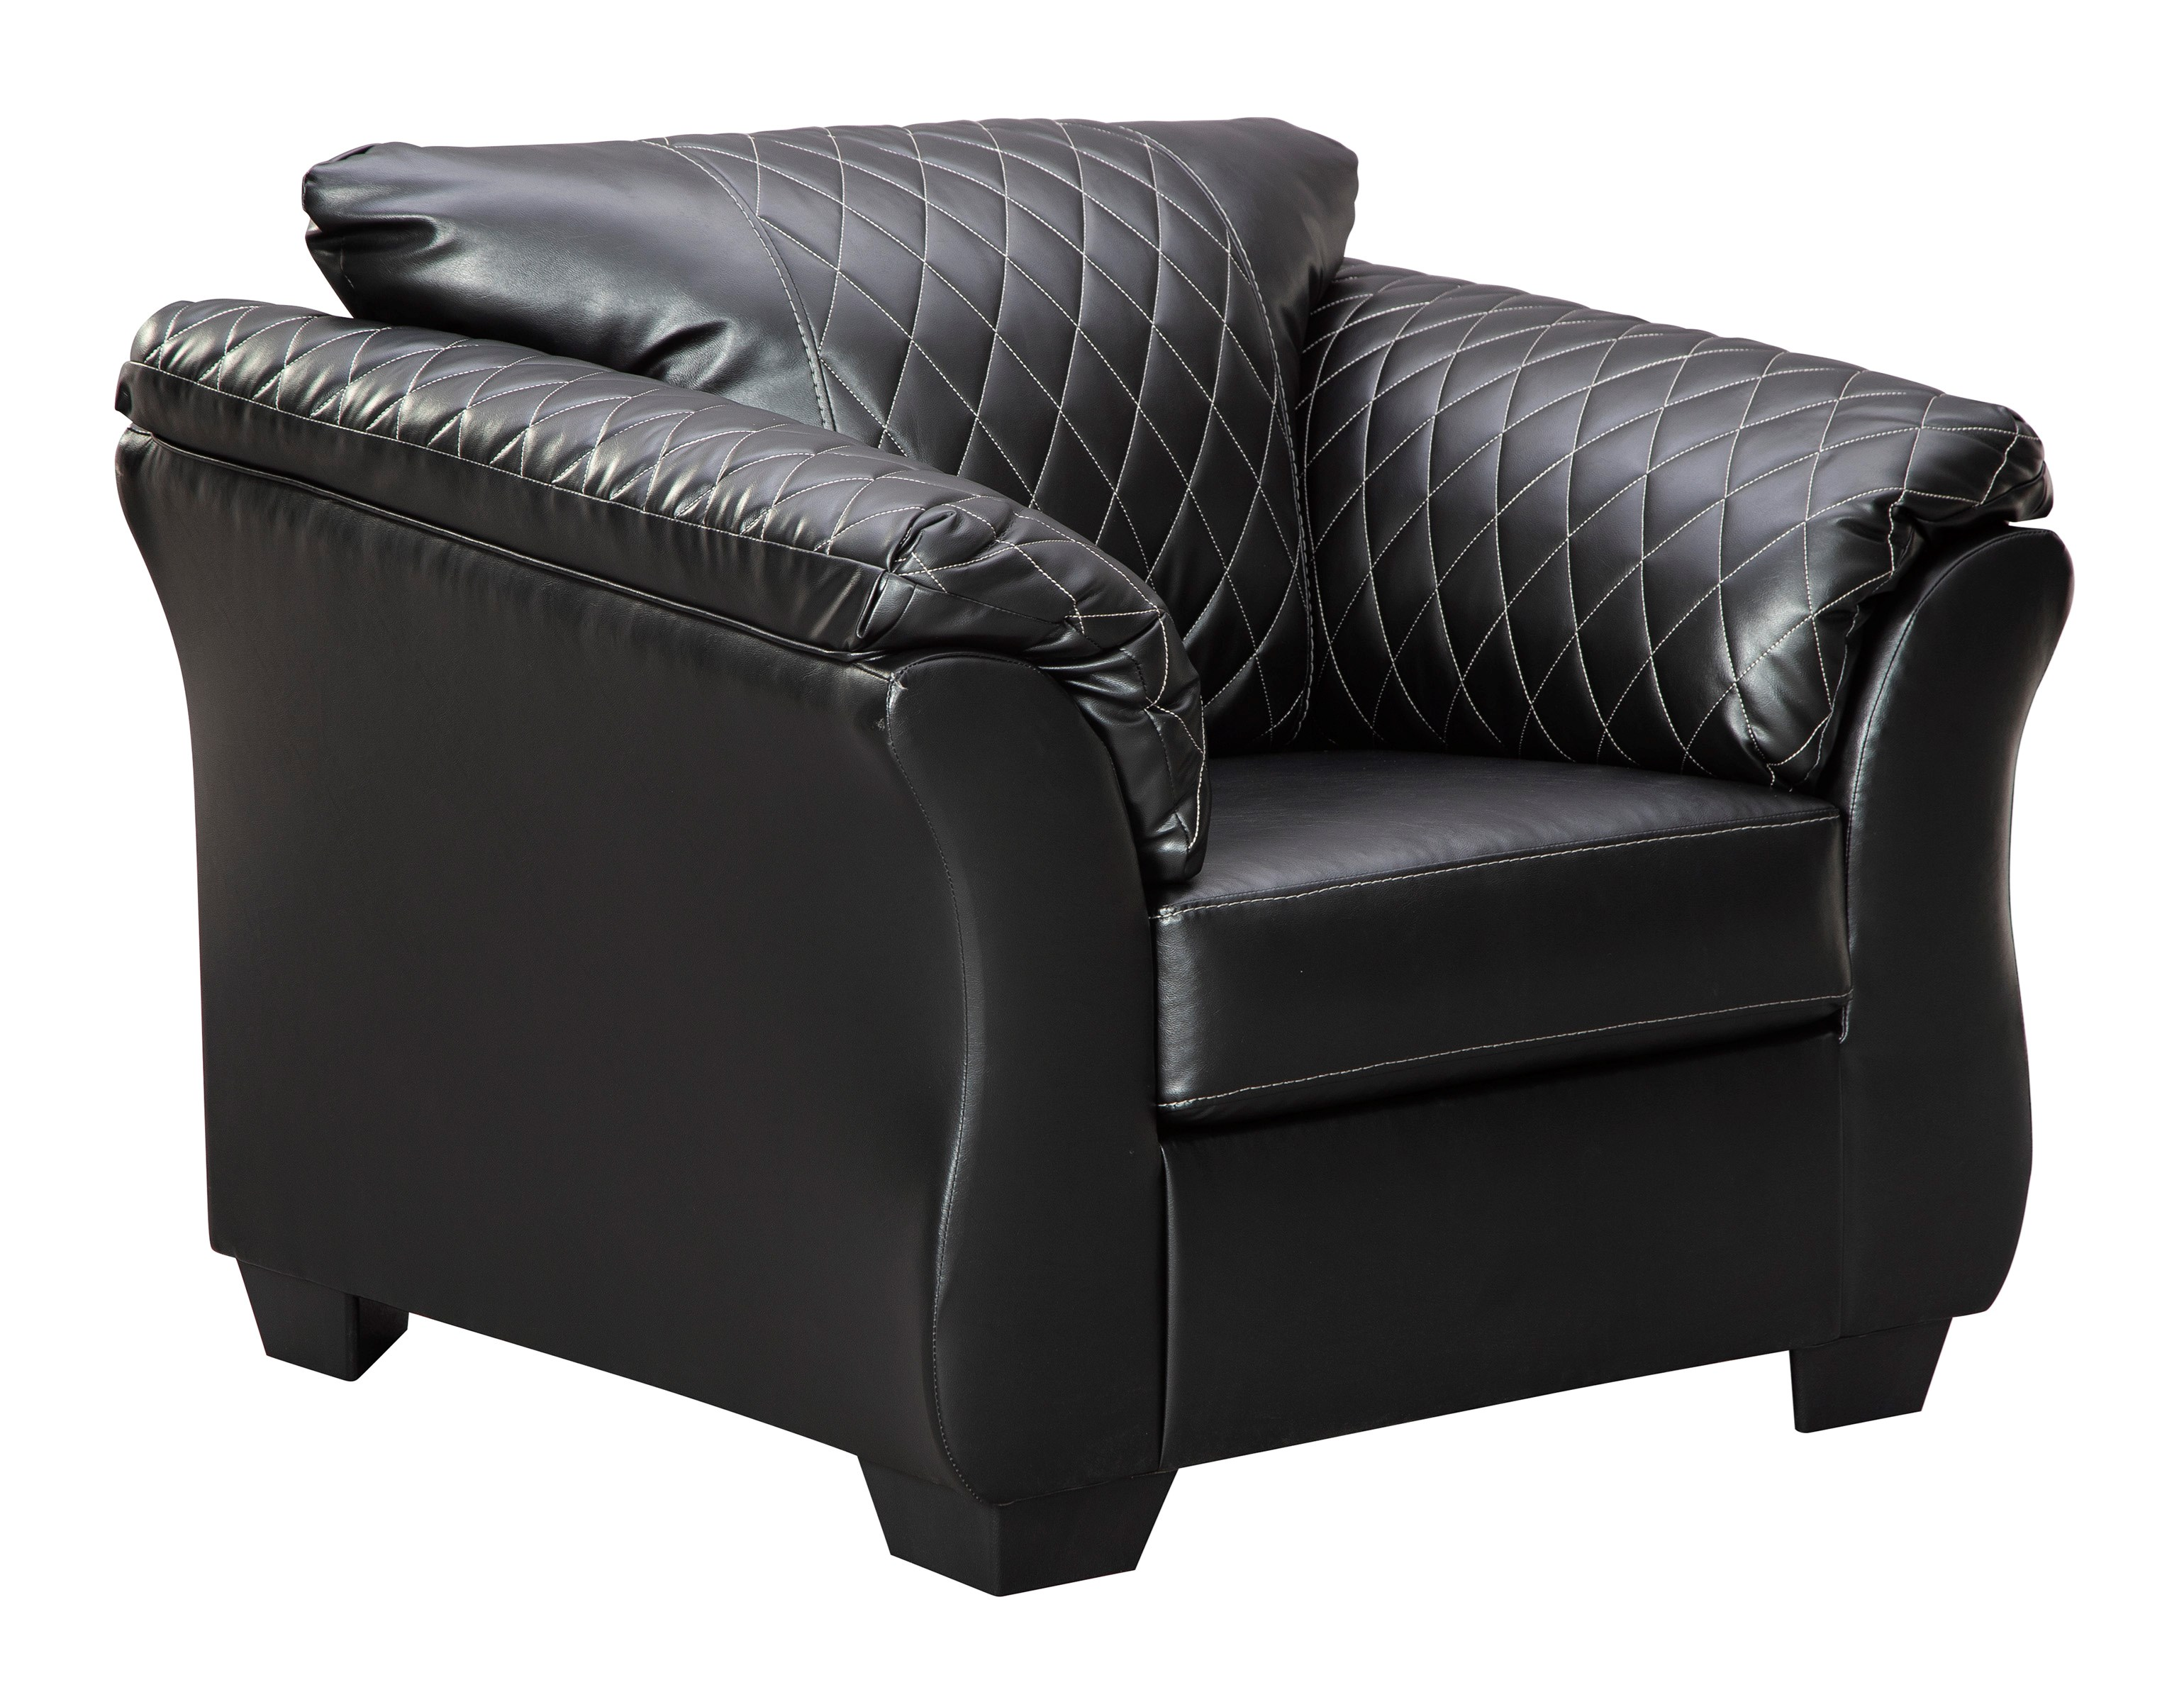 Betrillo Chair by Signature Design by Ashley at Zak's Warehouse Clearance Center